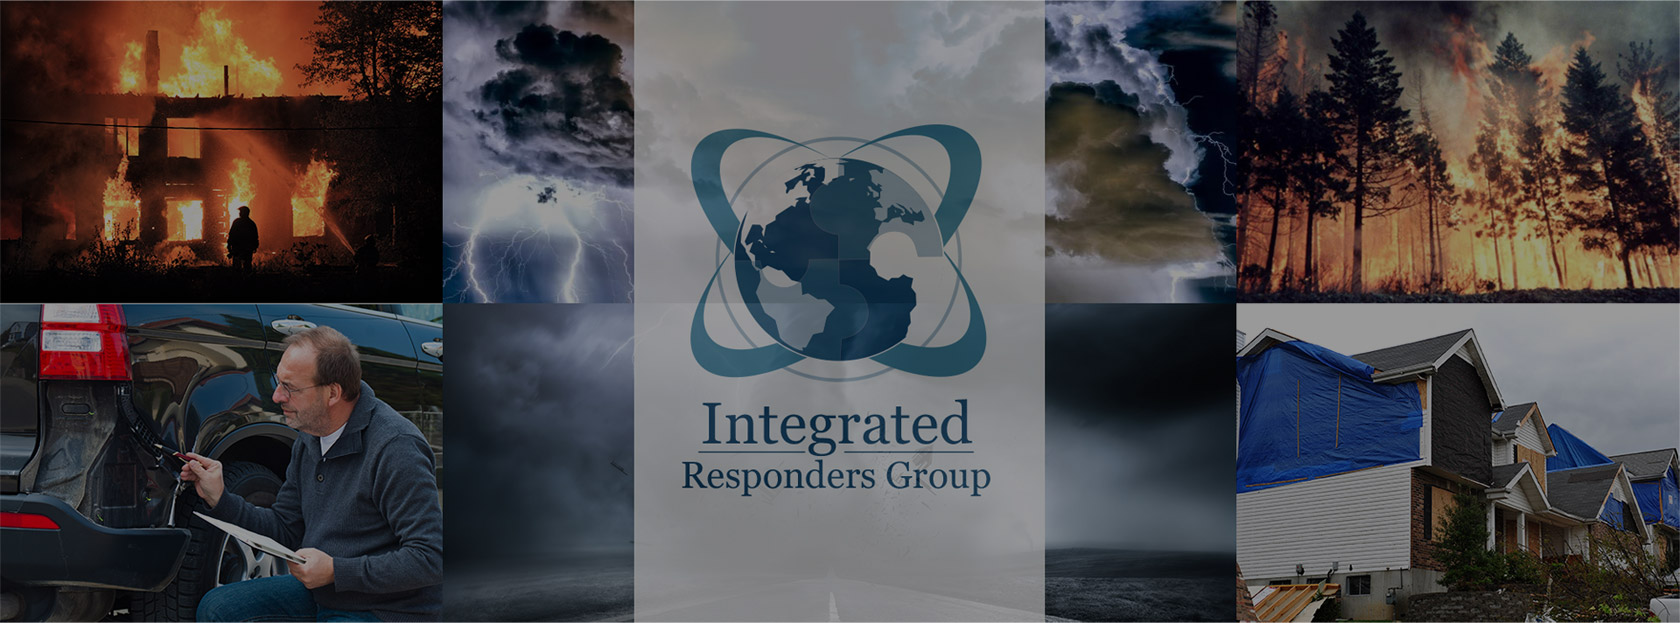 Integrated responders group